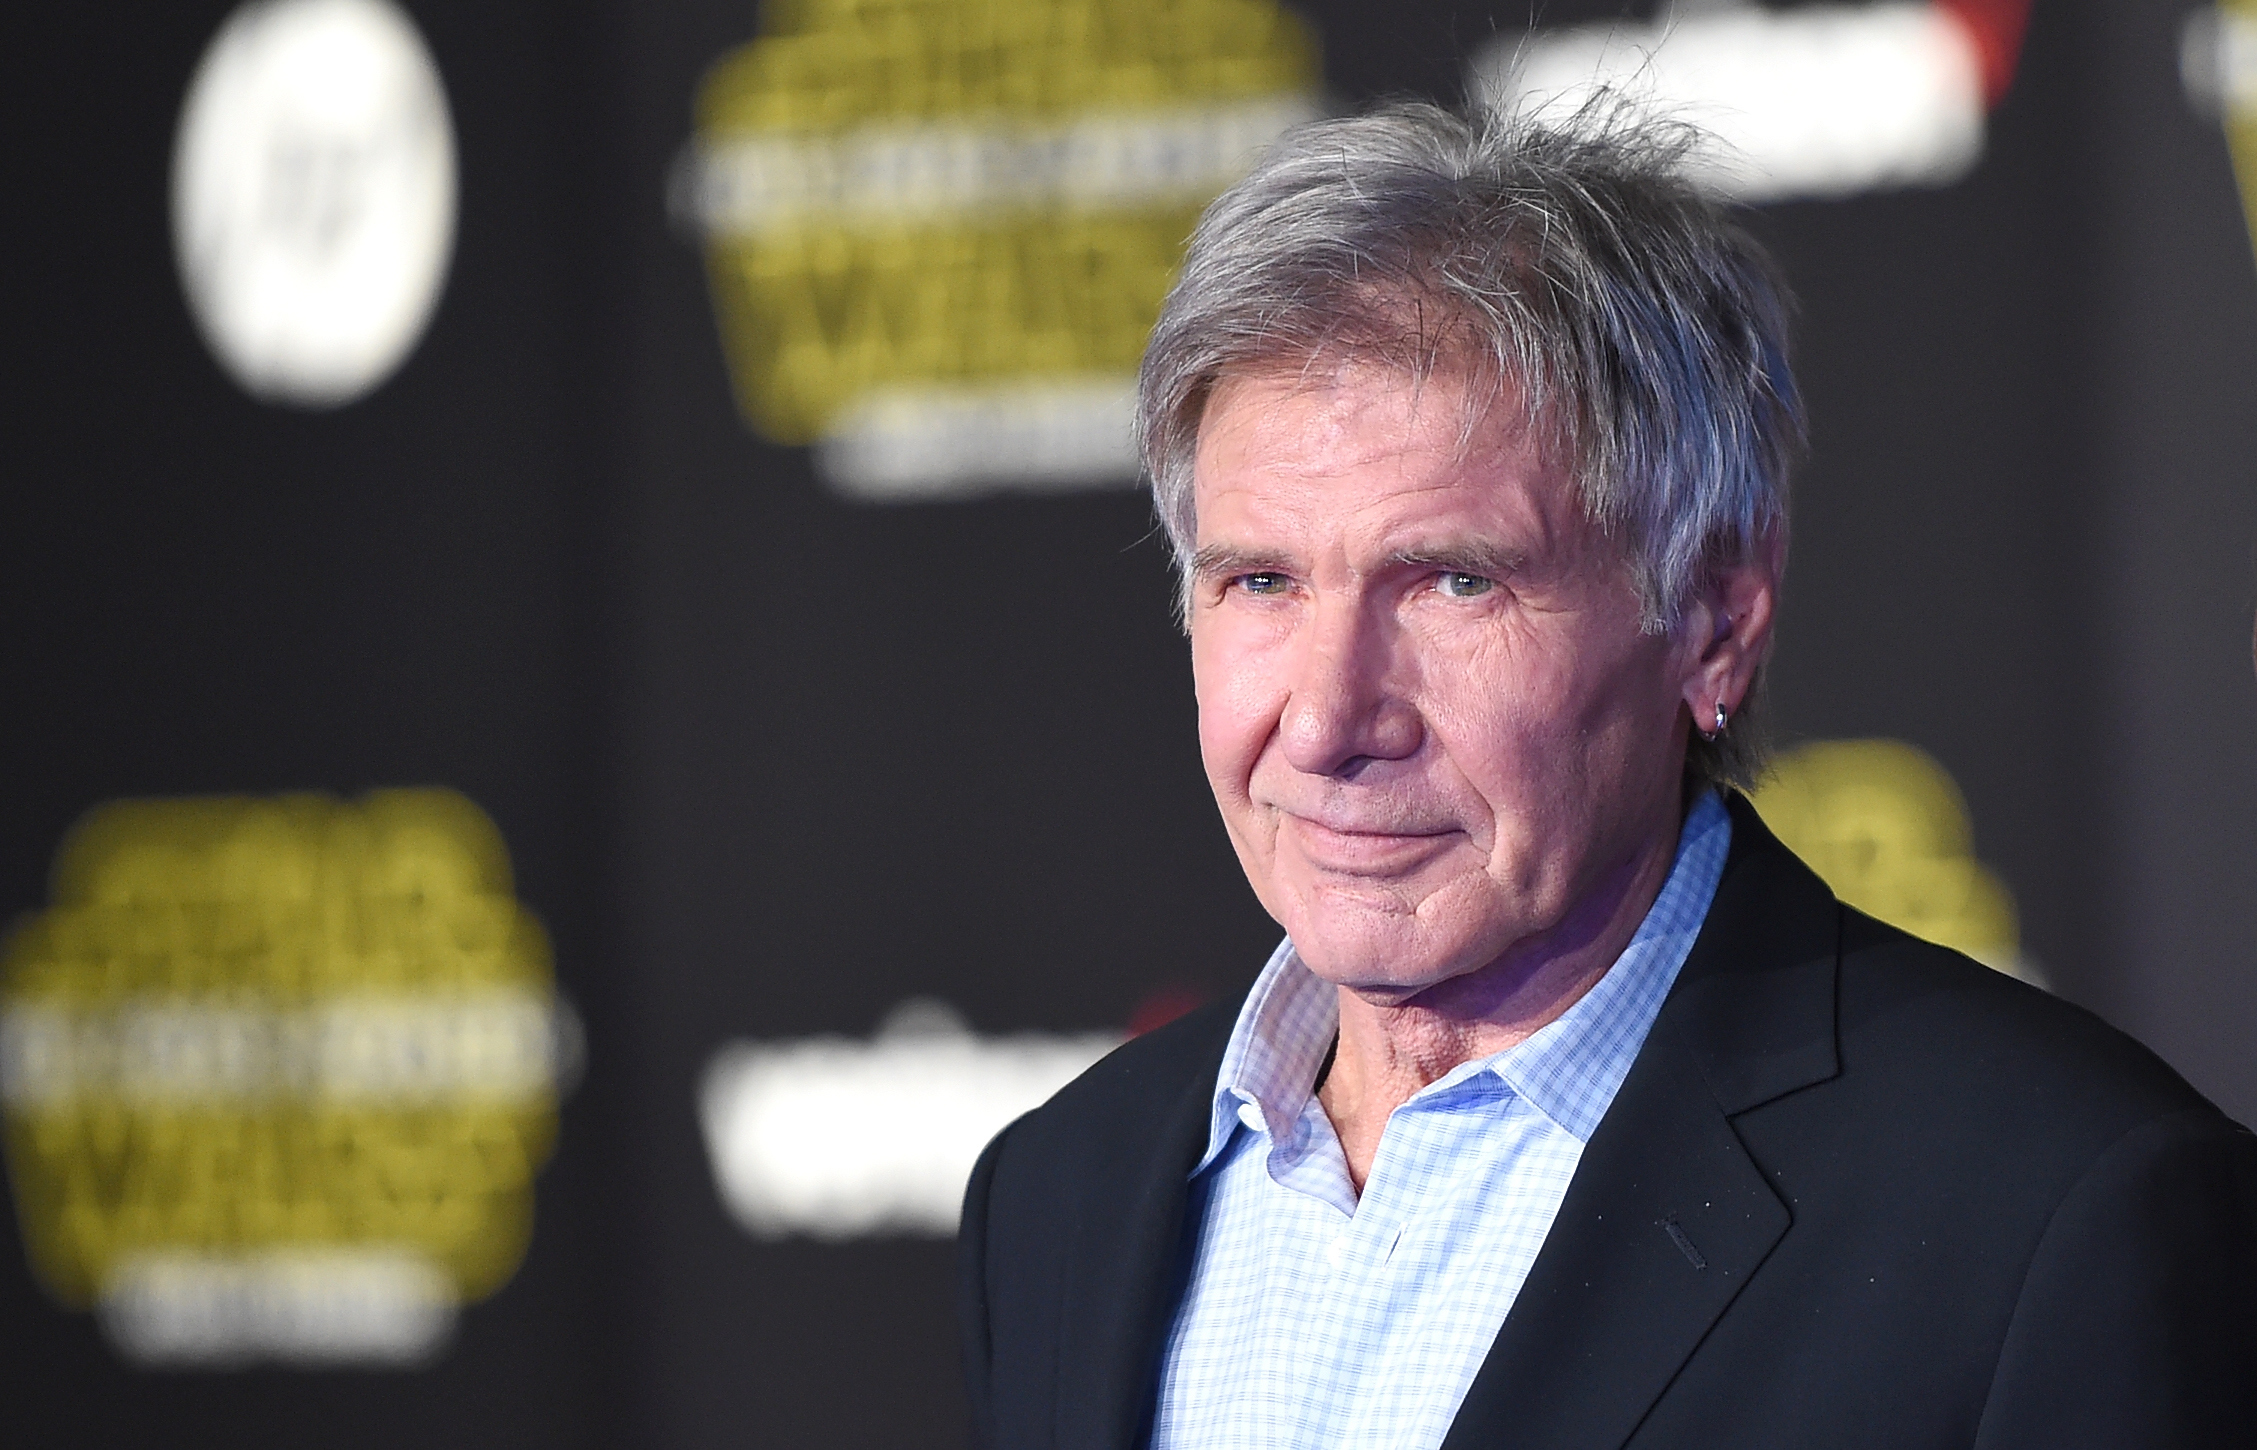 Harrison Ford attends the Premiere of 'Star Wars: The Force Awakens' in Hollywood, CA on Dec. 14, 2015.